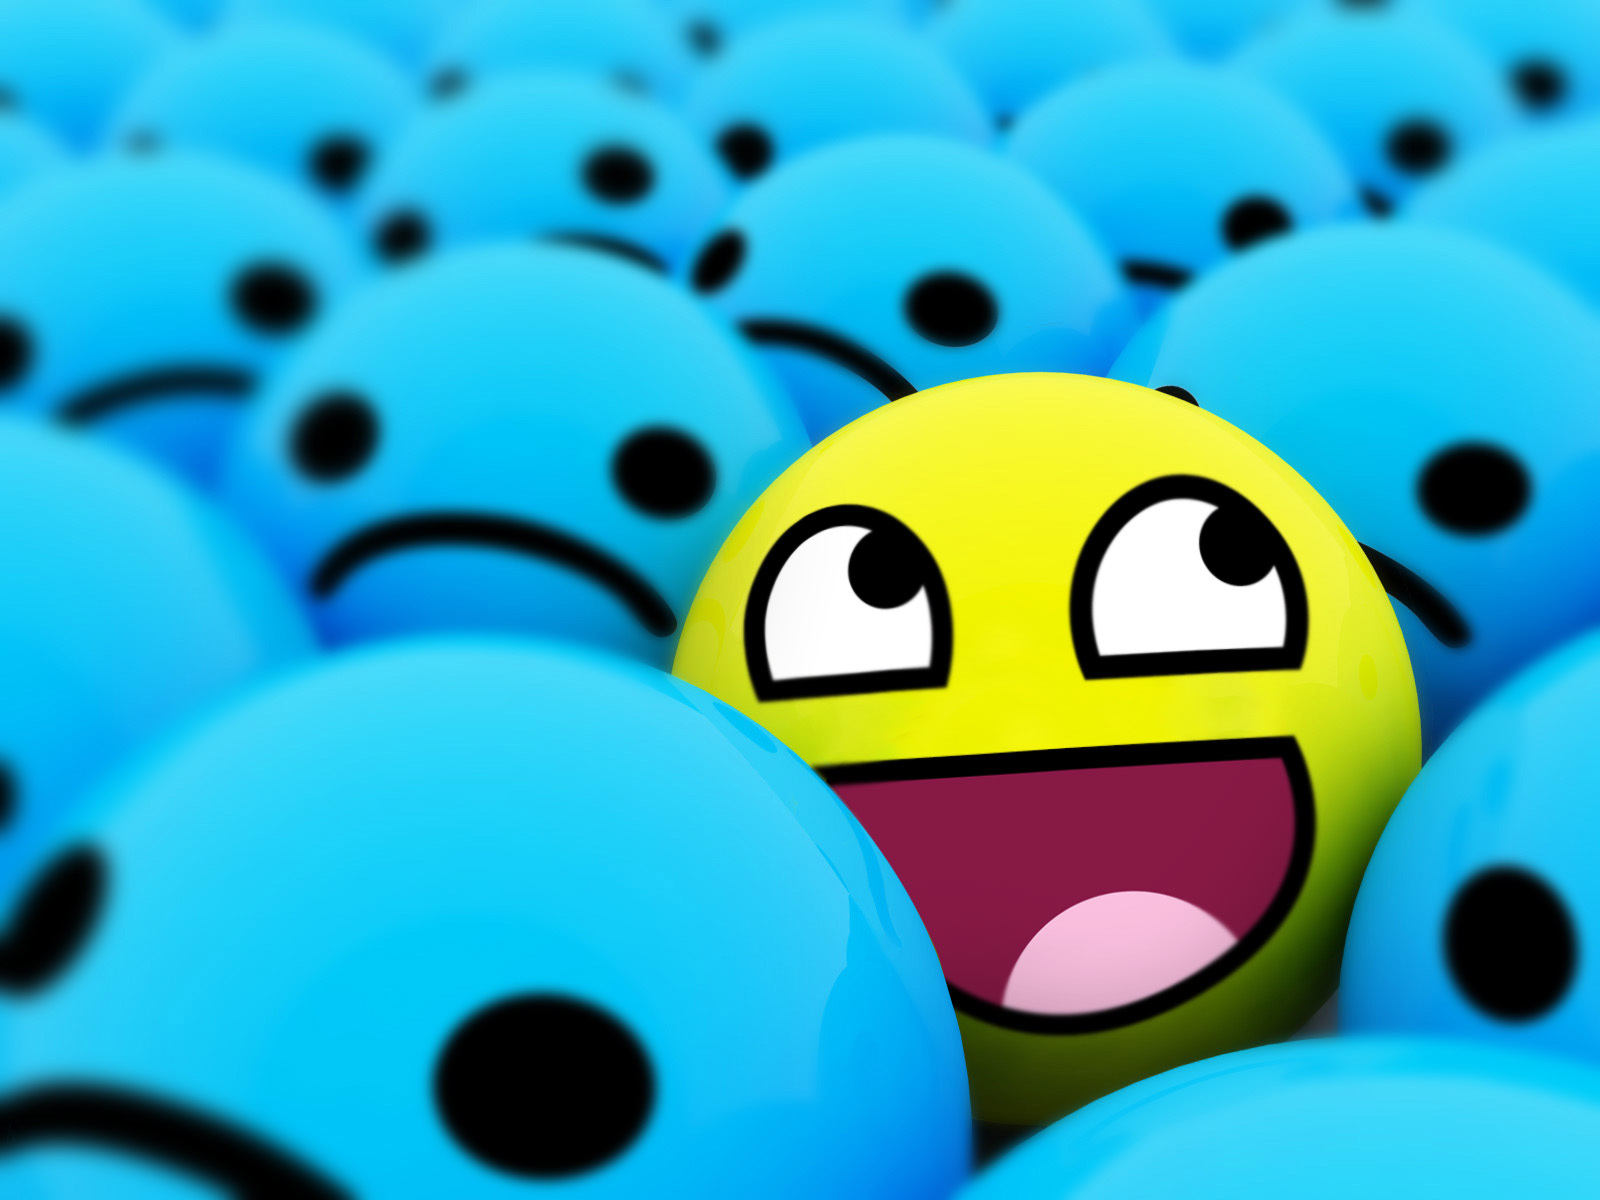 Awesome Smiley Face Wallpaper I1 Awesome Smiley Face